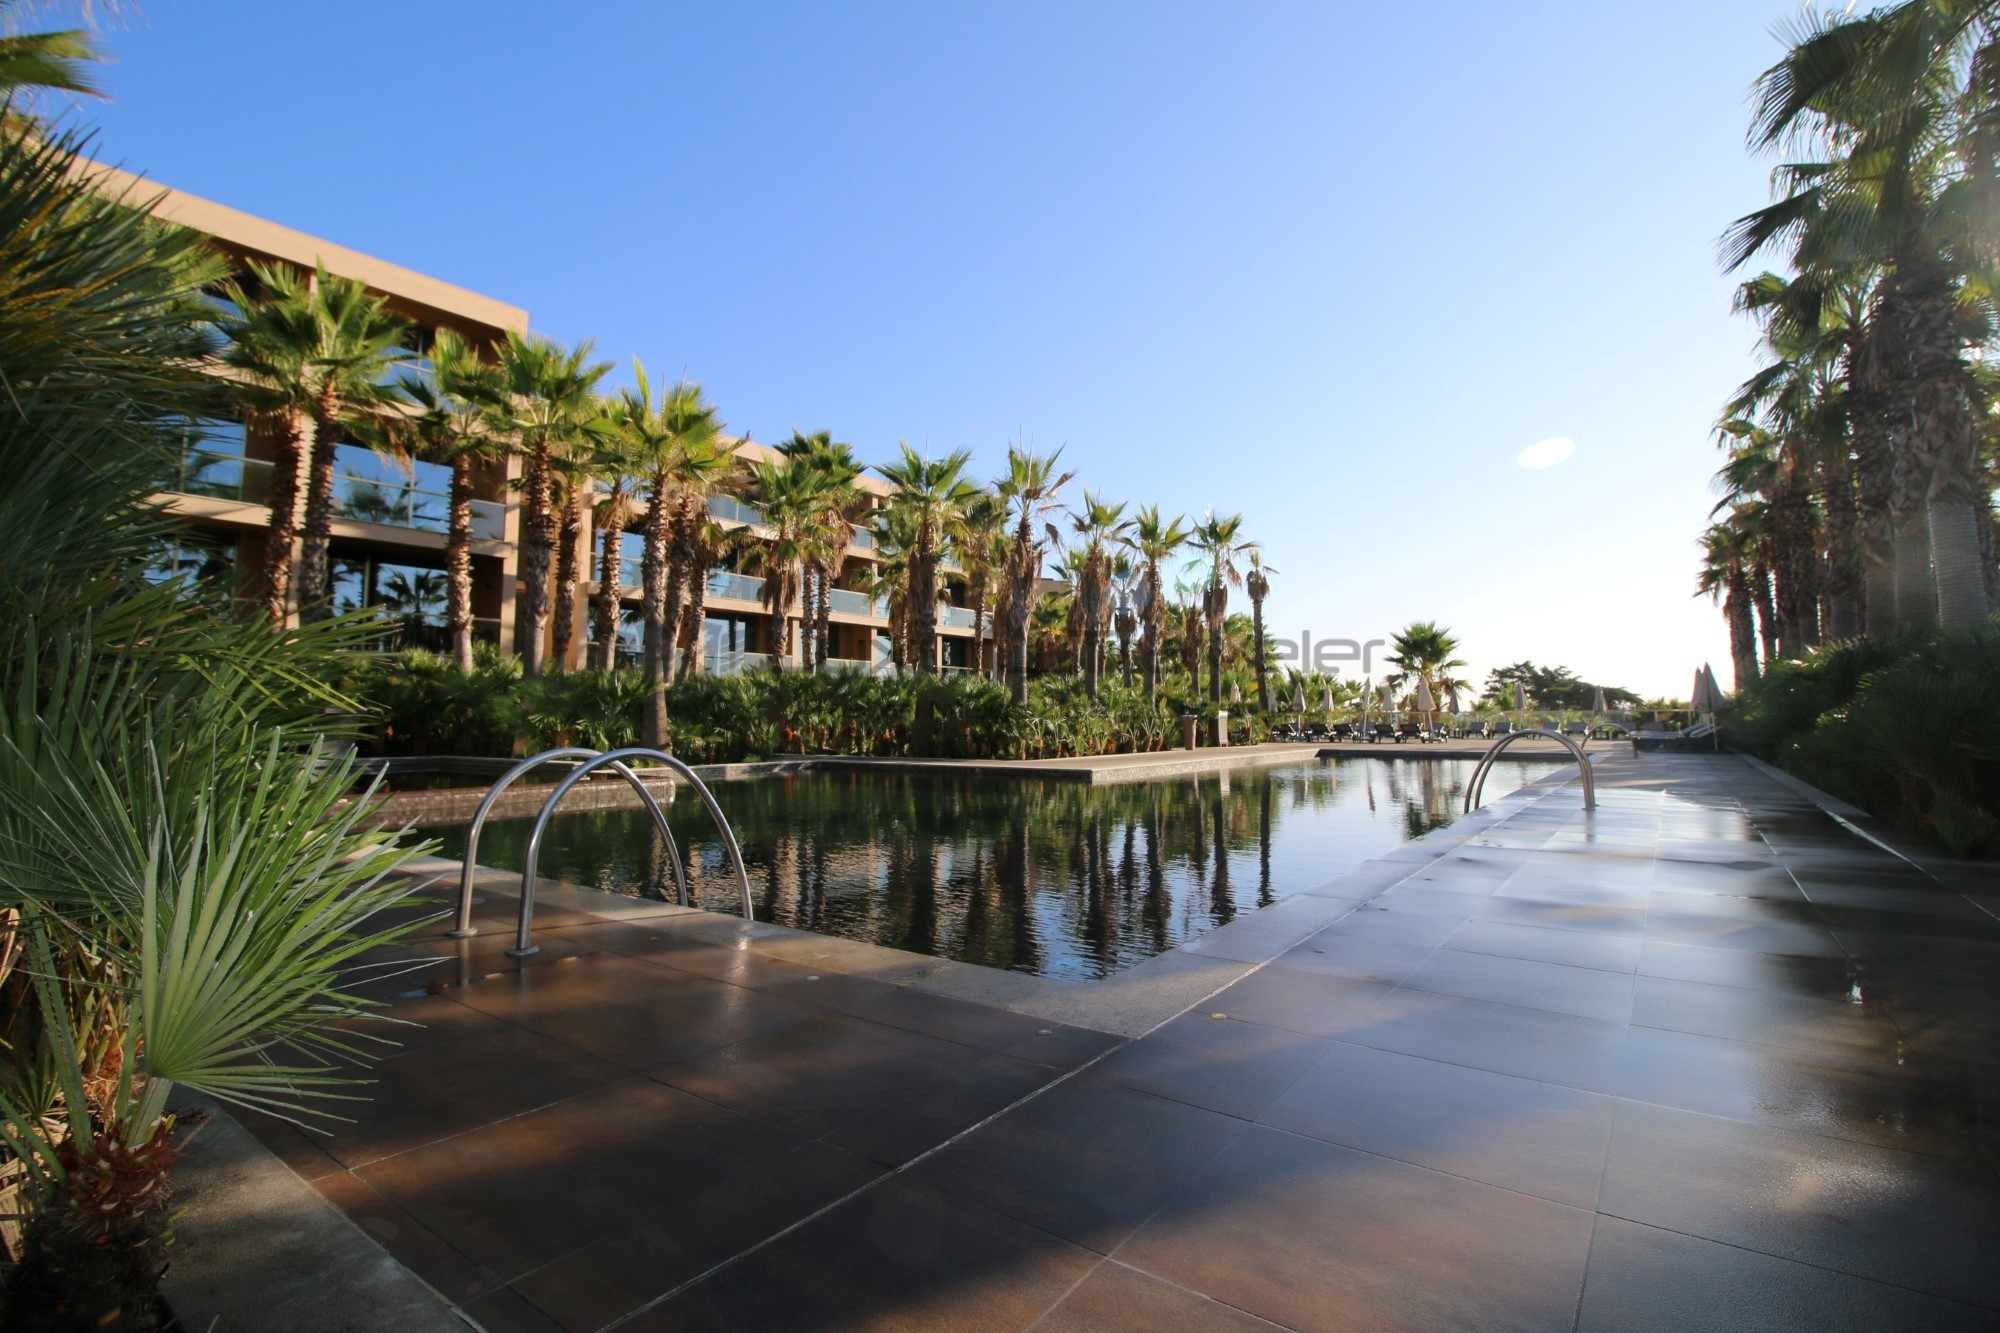 Lago_Montargil_Portugal_Luxury_Hotel_Pool